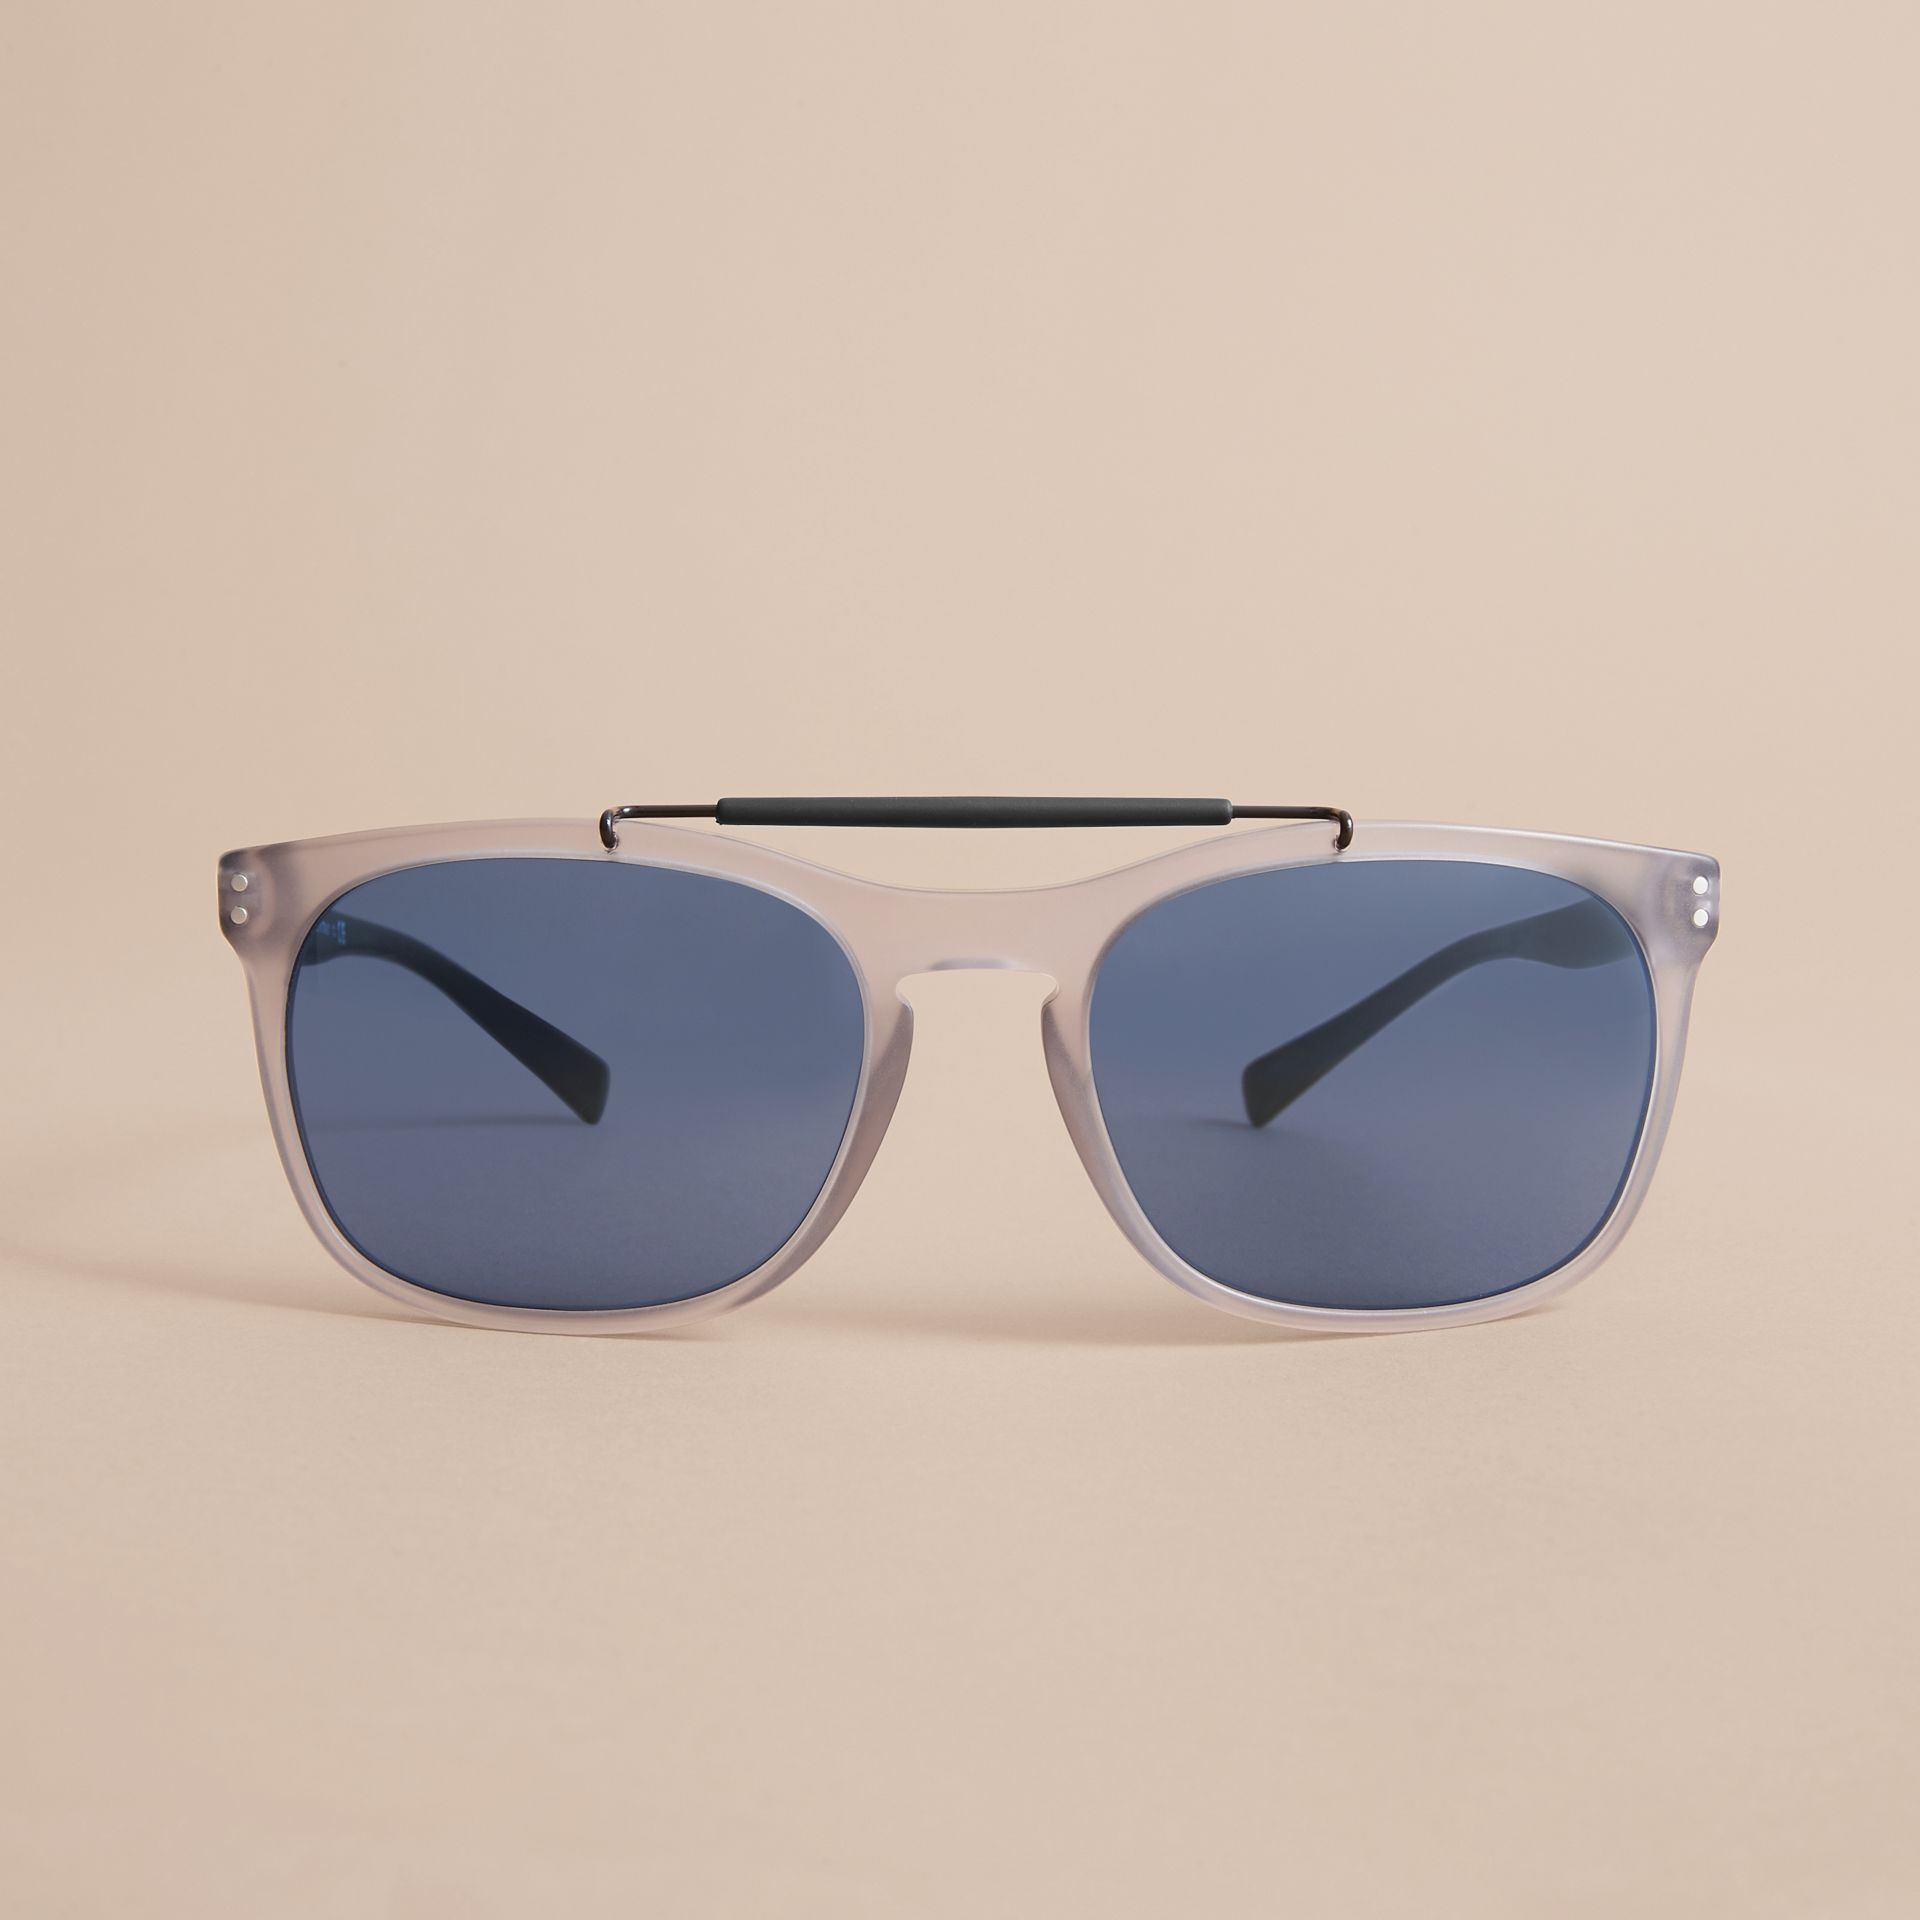 Top Bar Square Frame Sunglasses in Mineral Grey - Men | Burberry Singapore - gallery image 3